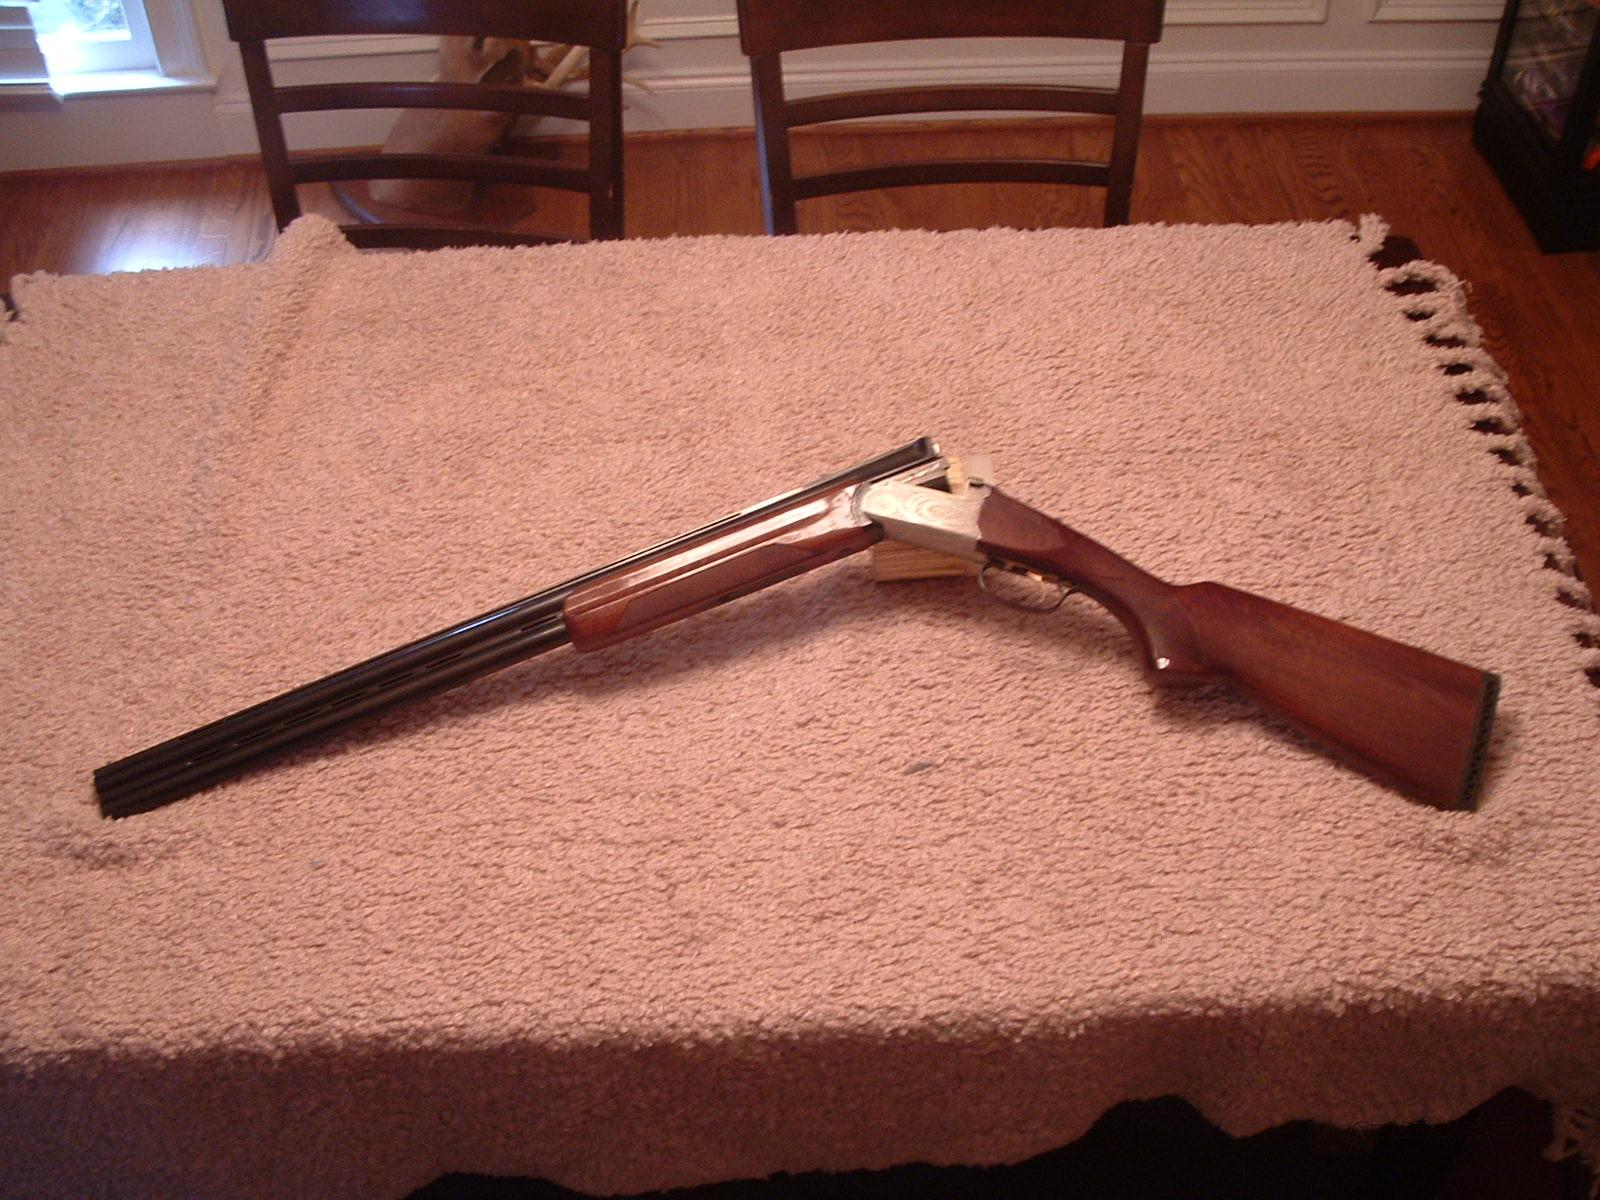 American Arms Silver 1 Made in Italy  Guns > Shotguns > American Arms Shotguns